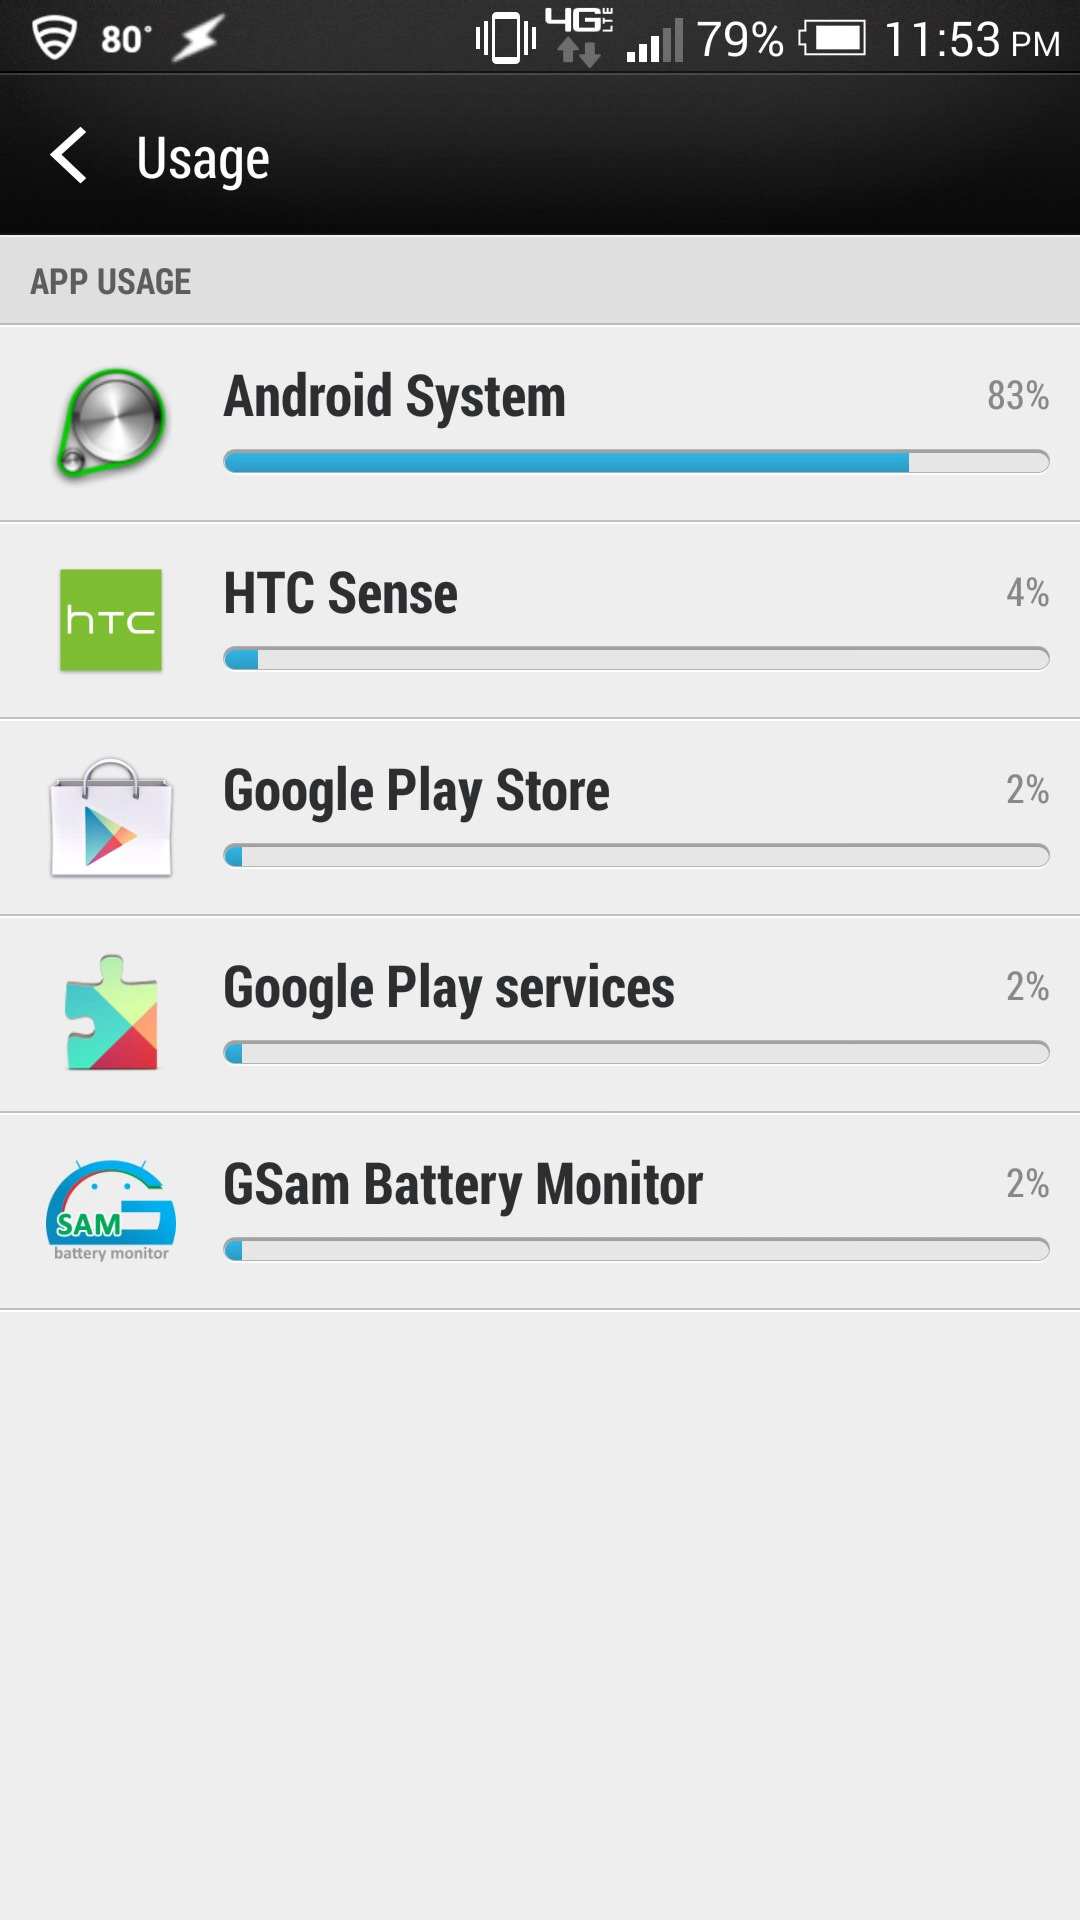 My experience with the Kitkat 4 4 2 battery drain